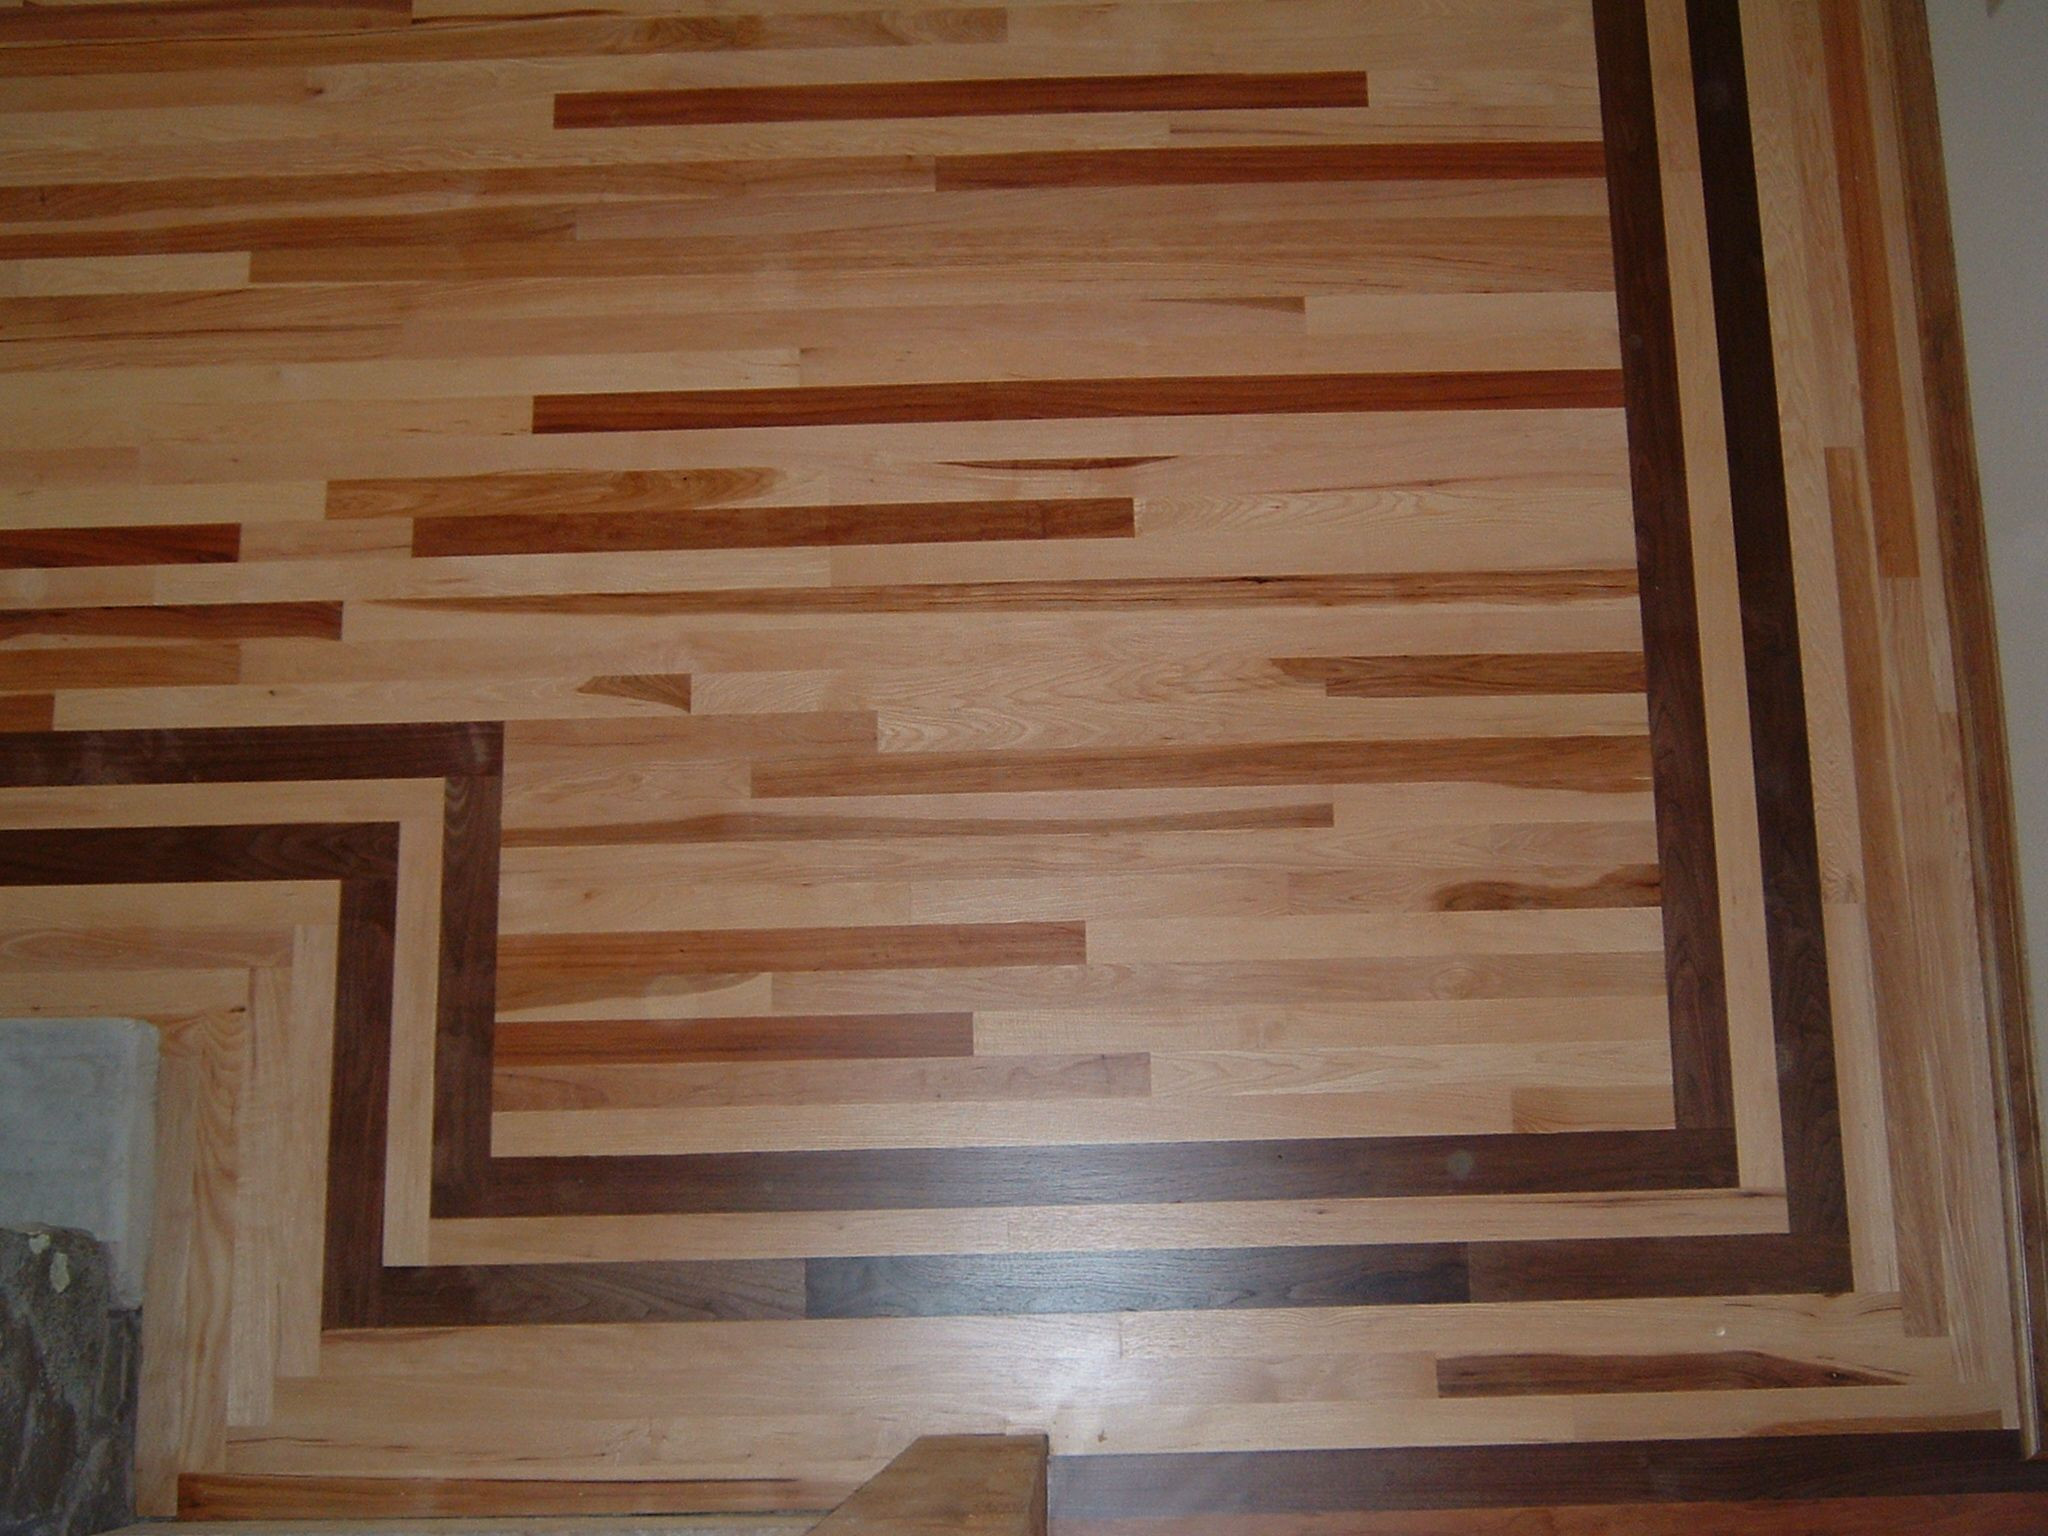 hardwood floor refinishing omaha ne of dark wood flooring with inlay dark brown borders wood floors pertaining to dark wood flooring with inlay dark brown borders wood floors design awesome hickory wood floors